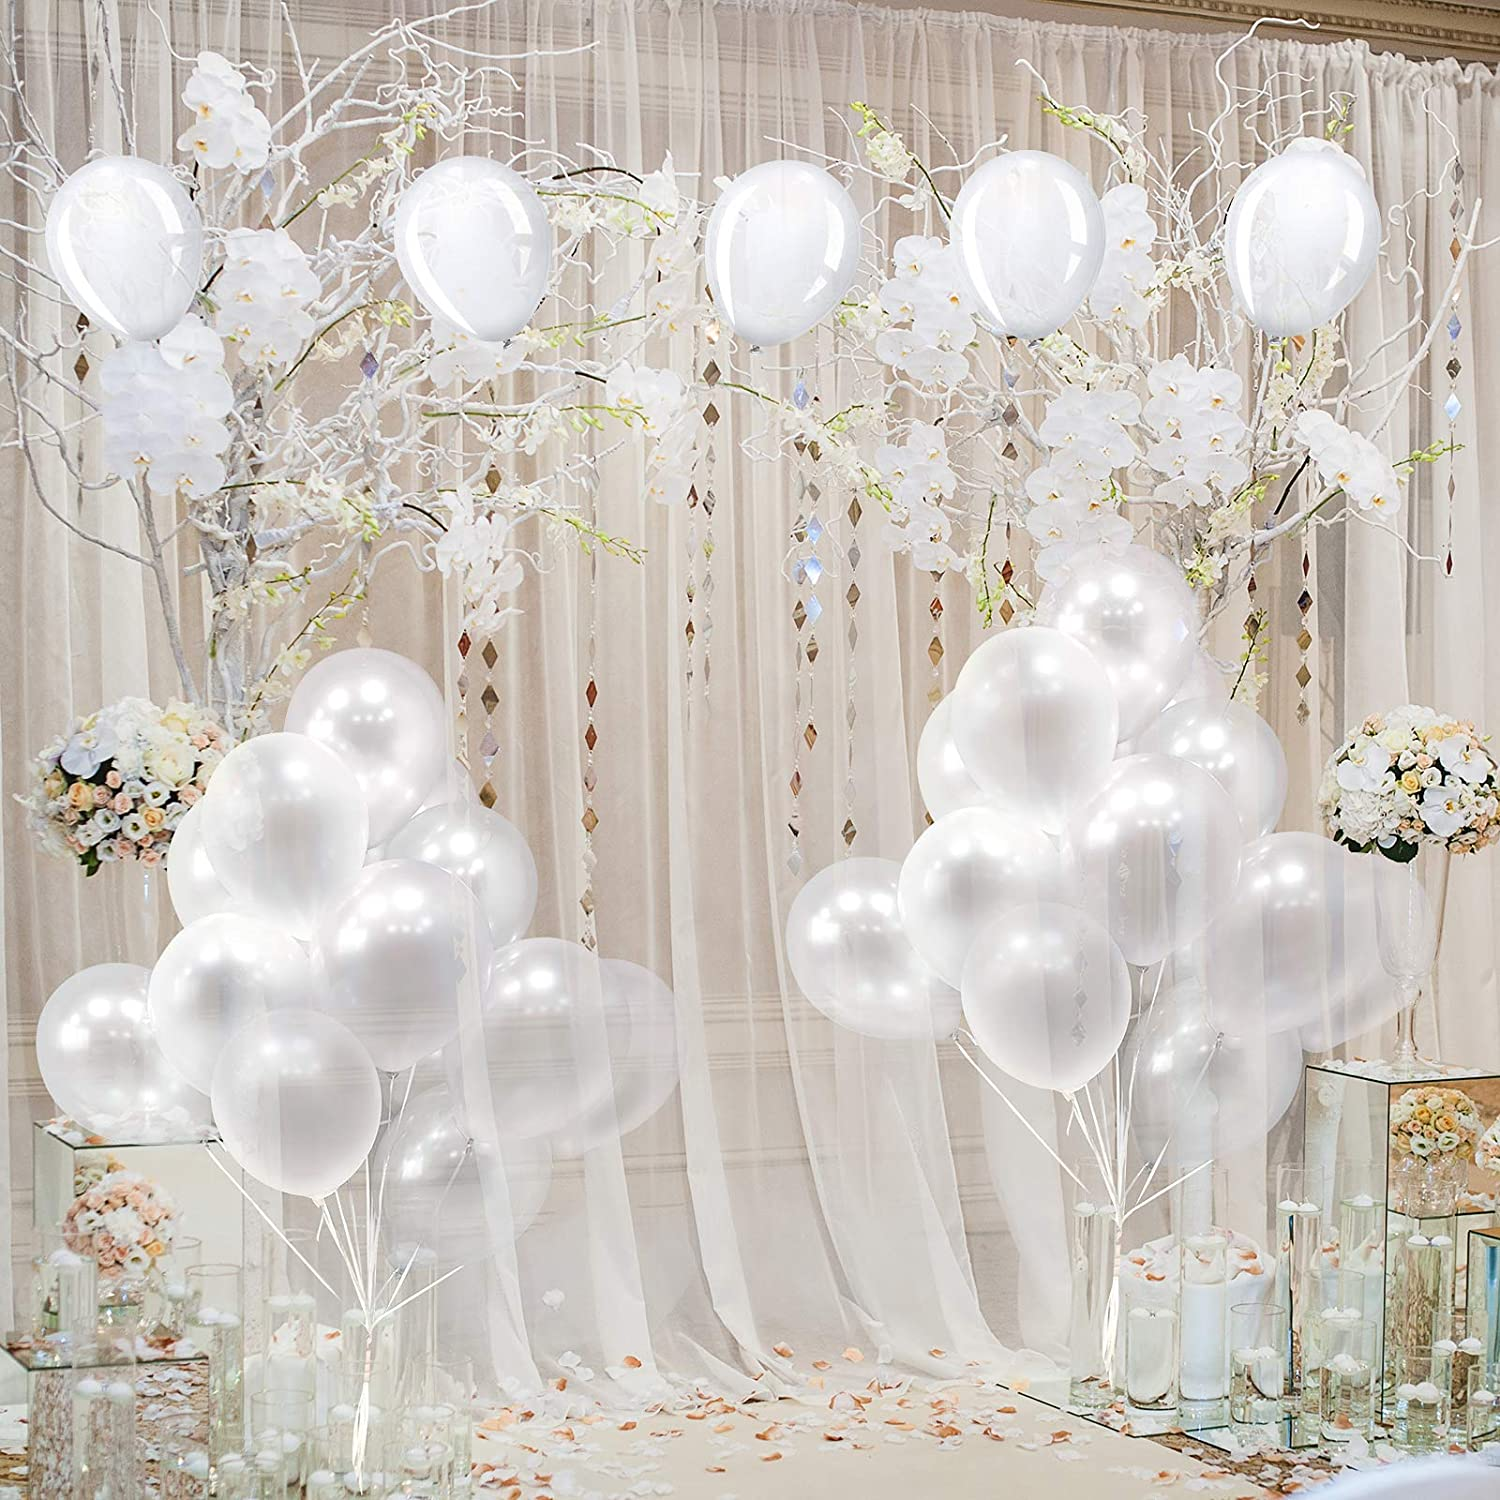 Helium Latex Round Balloons for Photo Shoot Birthday Wedding Engagement Anniversary Valentine/'s Day Christmas Party Picnic Carnival Decorations 200 Pieces Clear Balloons 5 Inch Transparent Balloons